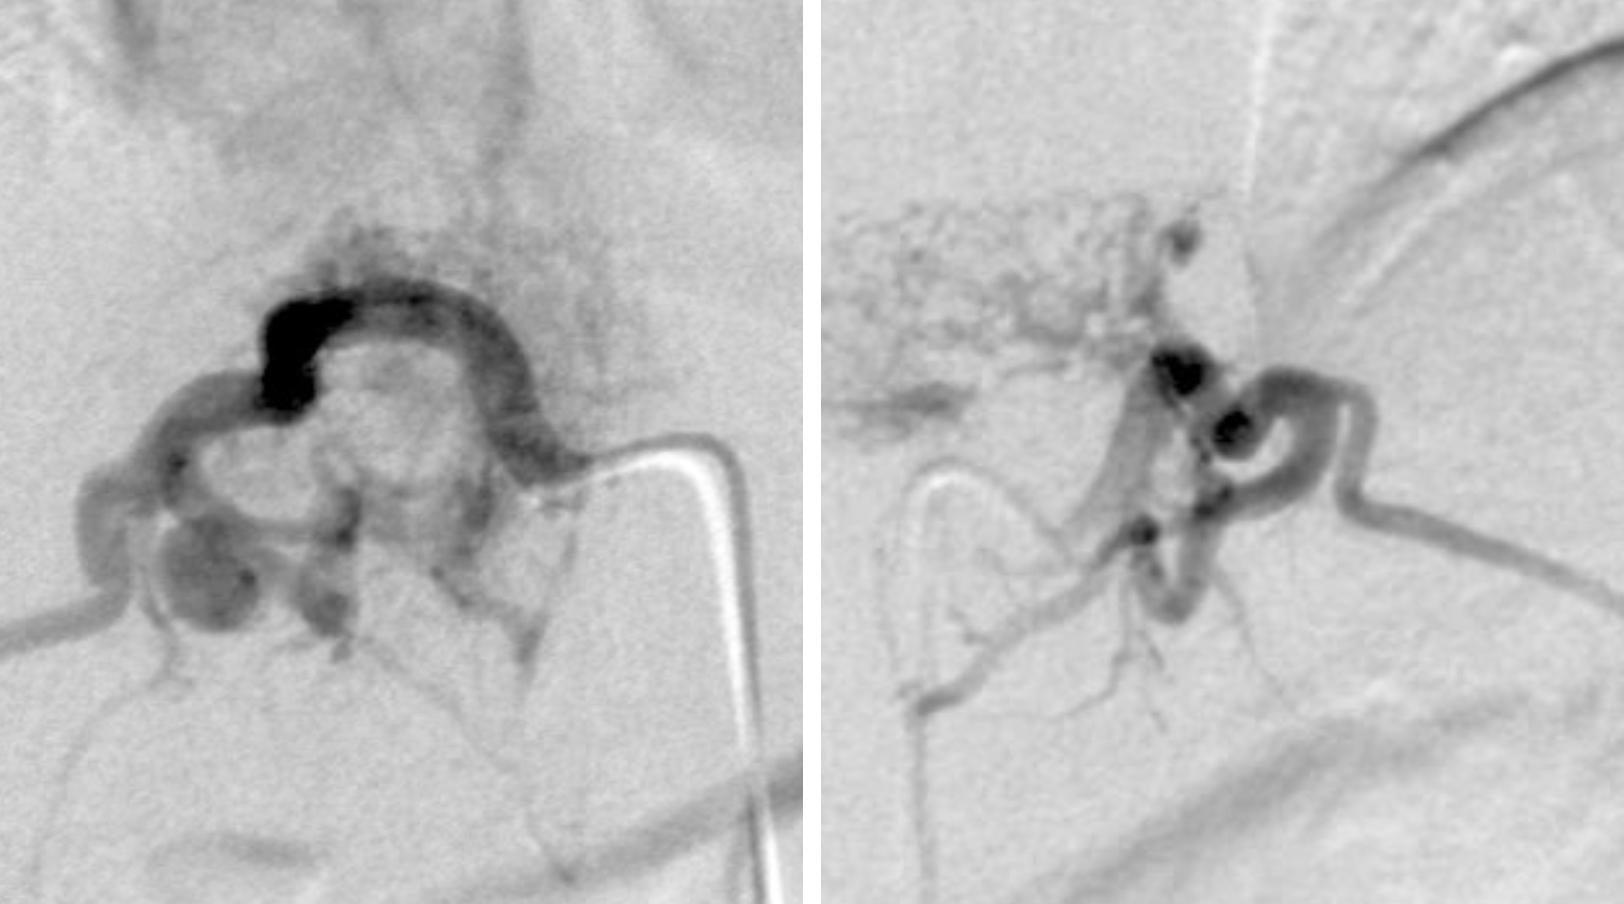 Figure 6c: 23 year old male with large midthoracic vascular birthmark and suspected underlying vascular malformation. Right and left T11 segmental arterial angiograms demonstrating bilateral supply to the metameric AVM.